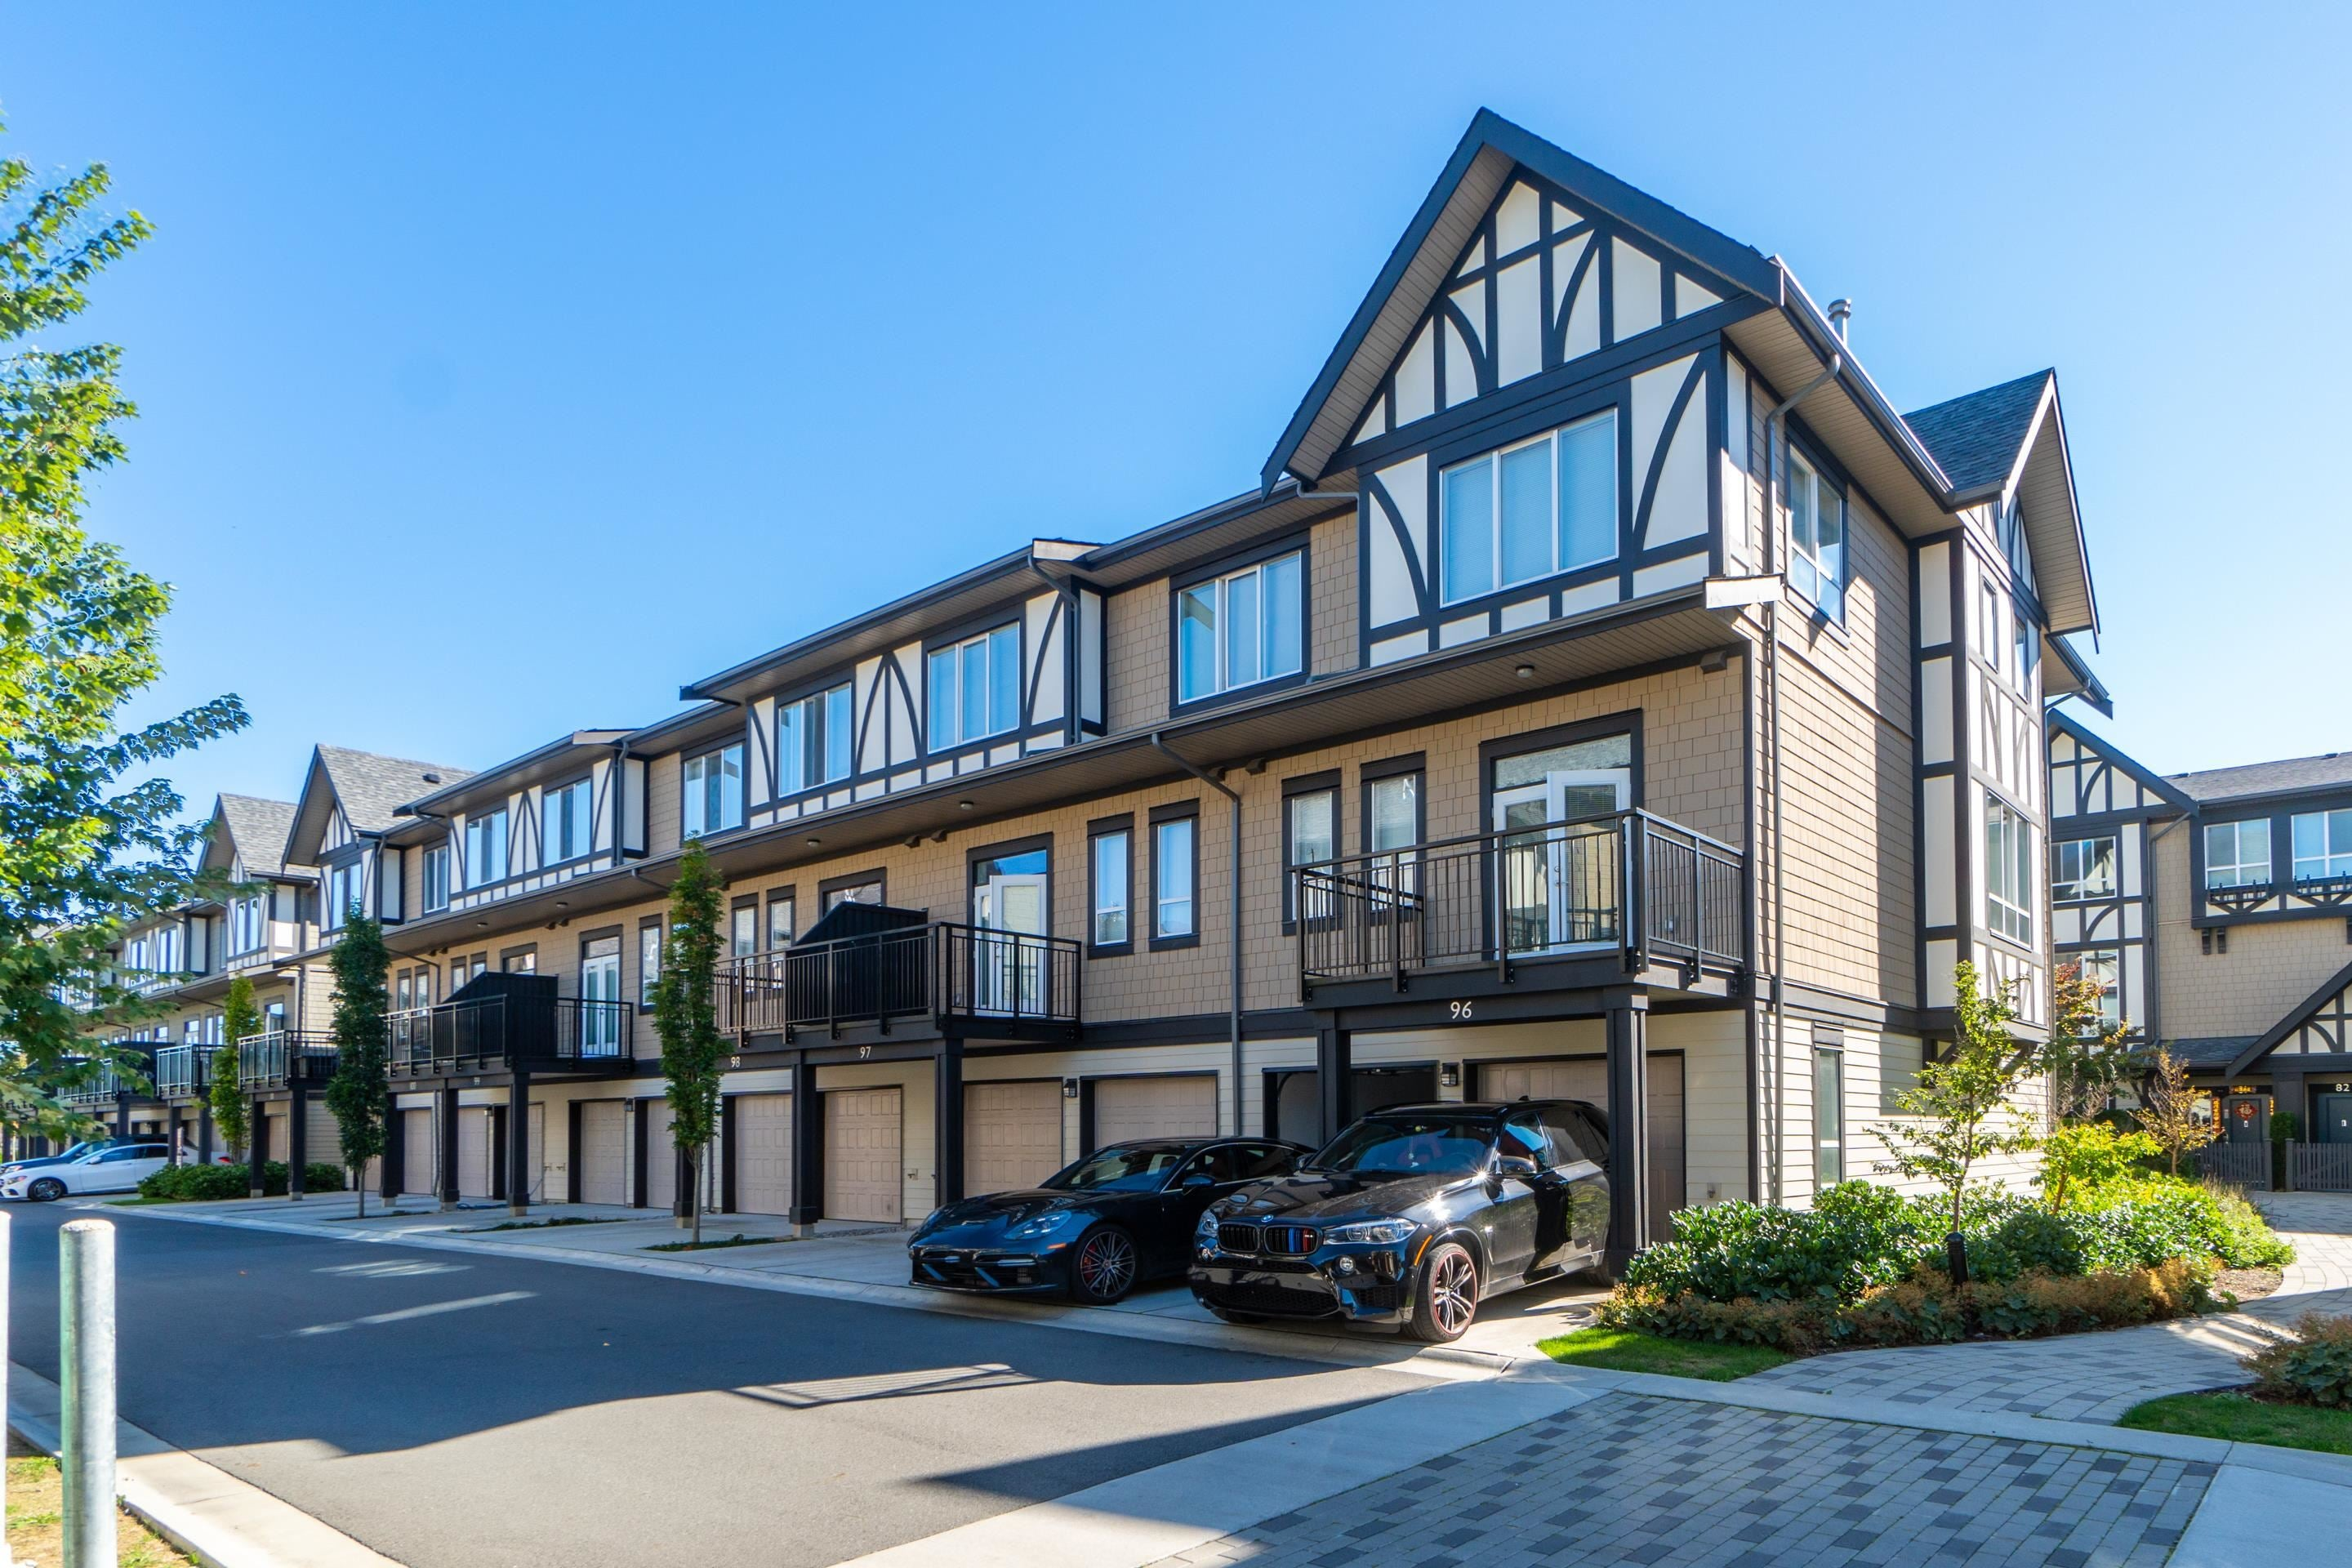 96 10388 NO. 2 ROAD - Woodwards Townhouse for sale, 4 Bedrooms (R2623417)